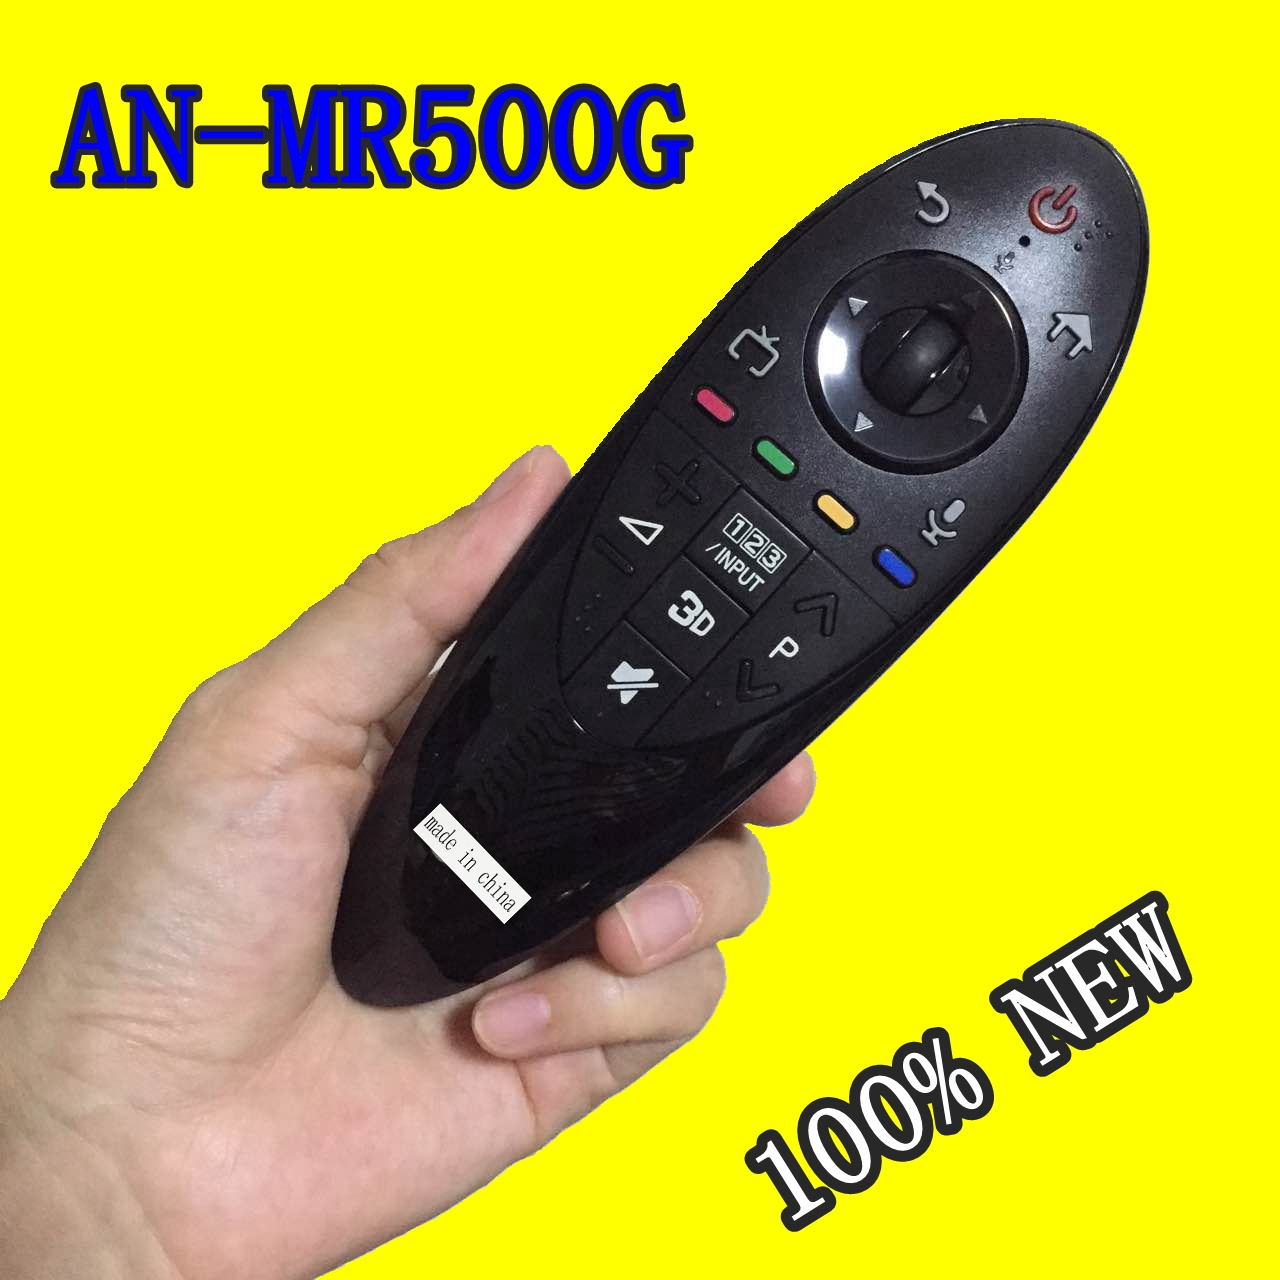 100% new AN-MR500G Magic Remote Control FIT for LG smart TV Series English version free shipping new an mr600g anmr600 magic remote control for lg 3d smart tv